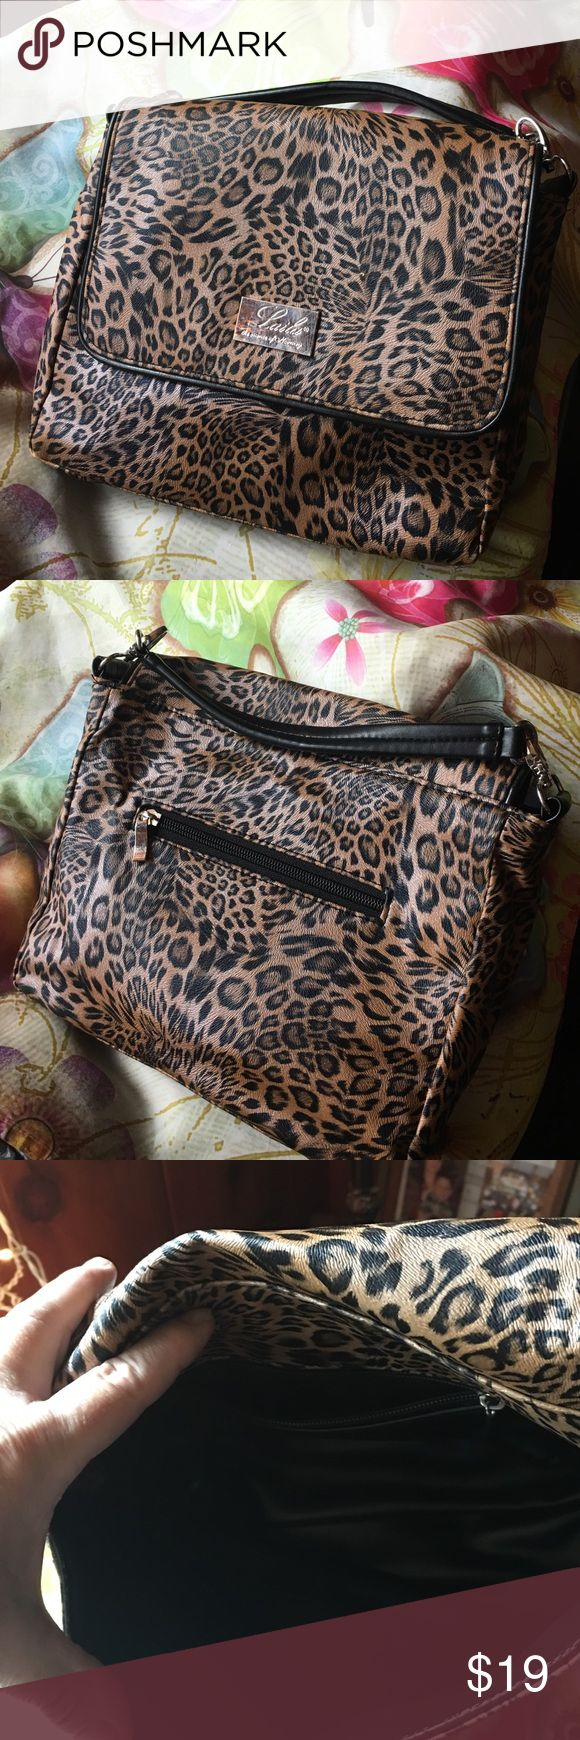 Laila the Essence of Norway purse Cute leopard Laila purse.  Flap has interior magnet for closure.  Interior has zippered pouch.  In really good condition.  There are scratches on nameplate. Laila Bags Satchels